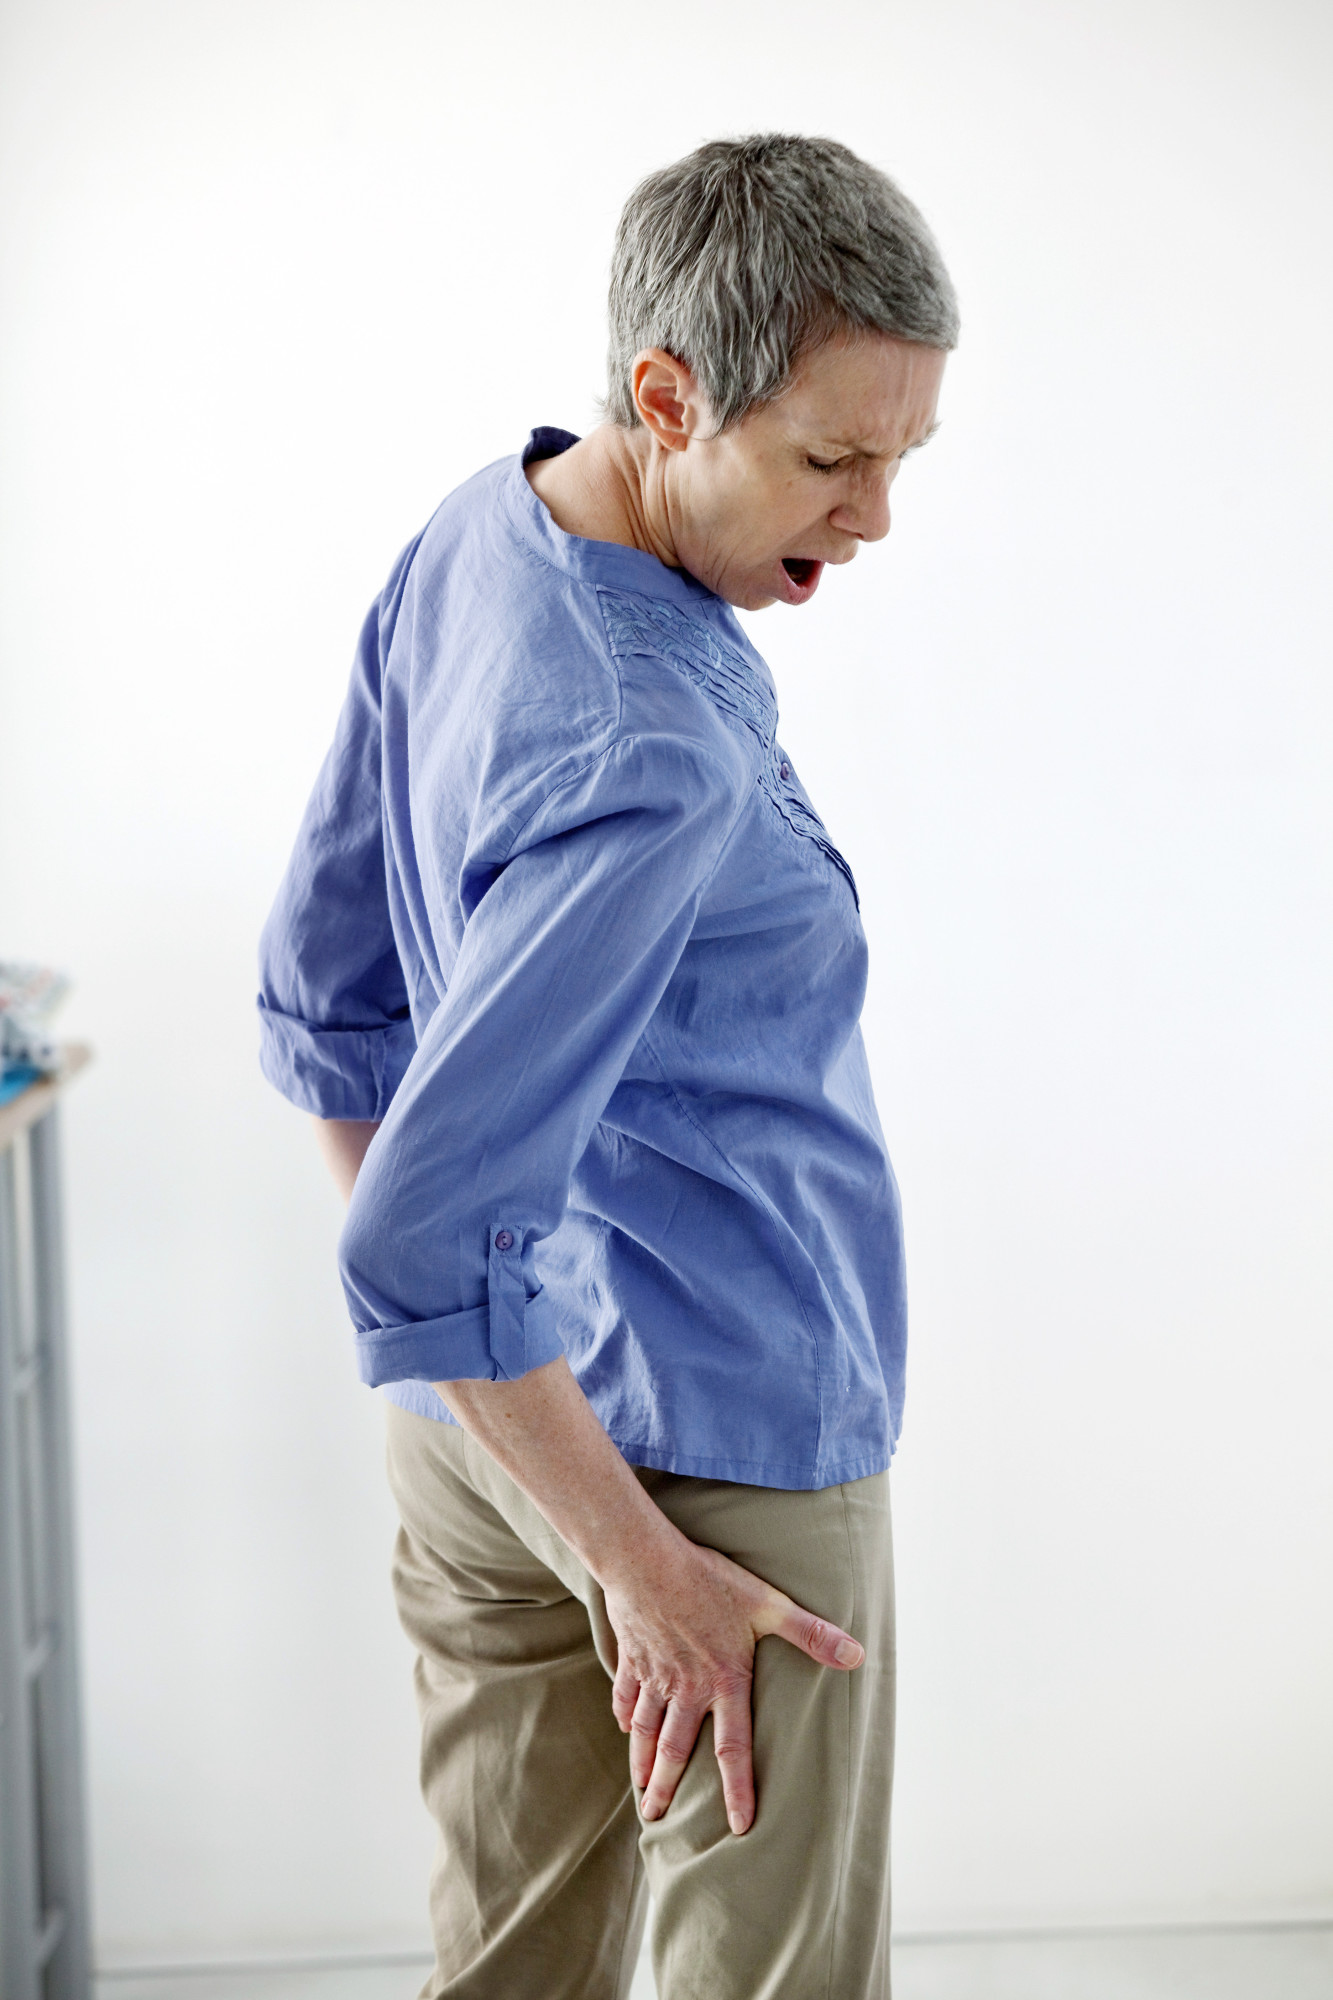 Ouch! Sciatica Symptoms to Watch for and Possible Treatment Options